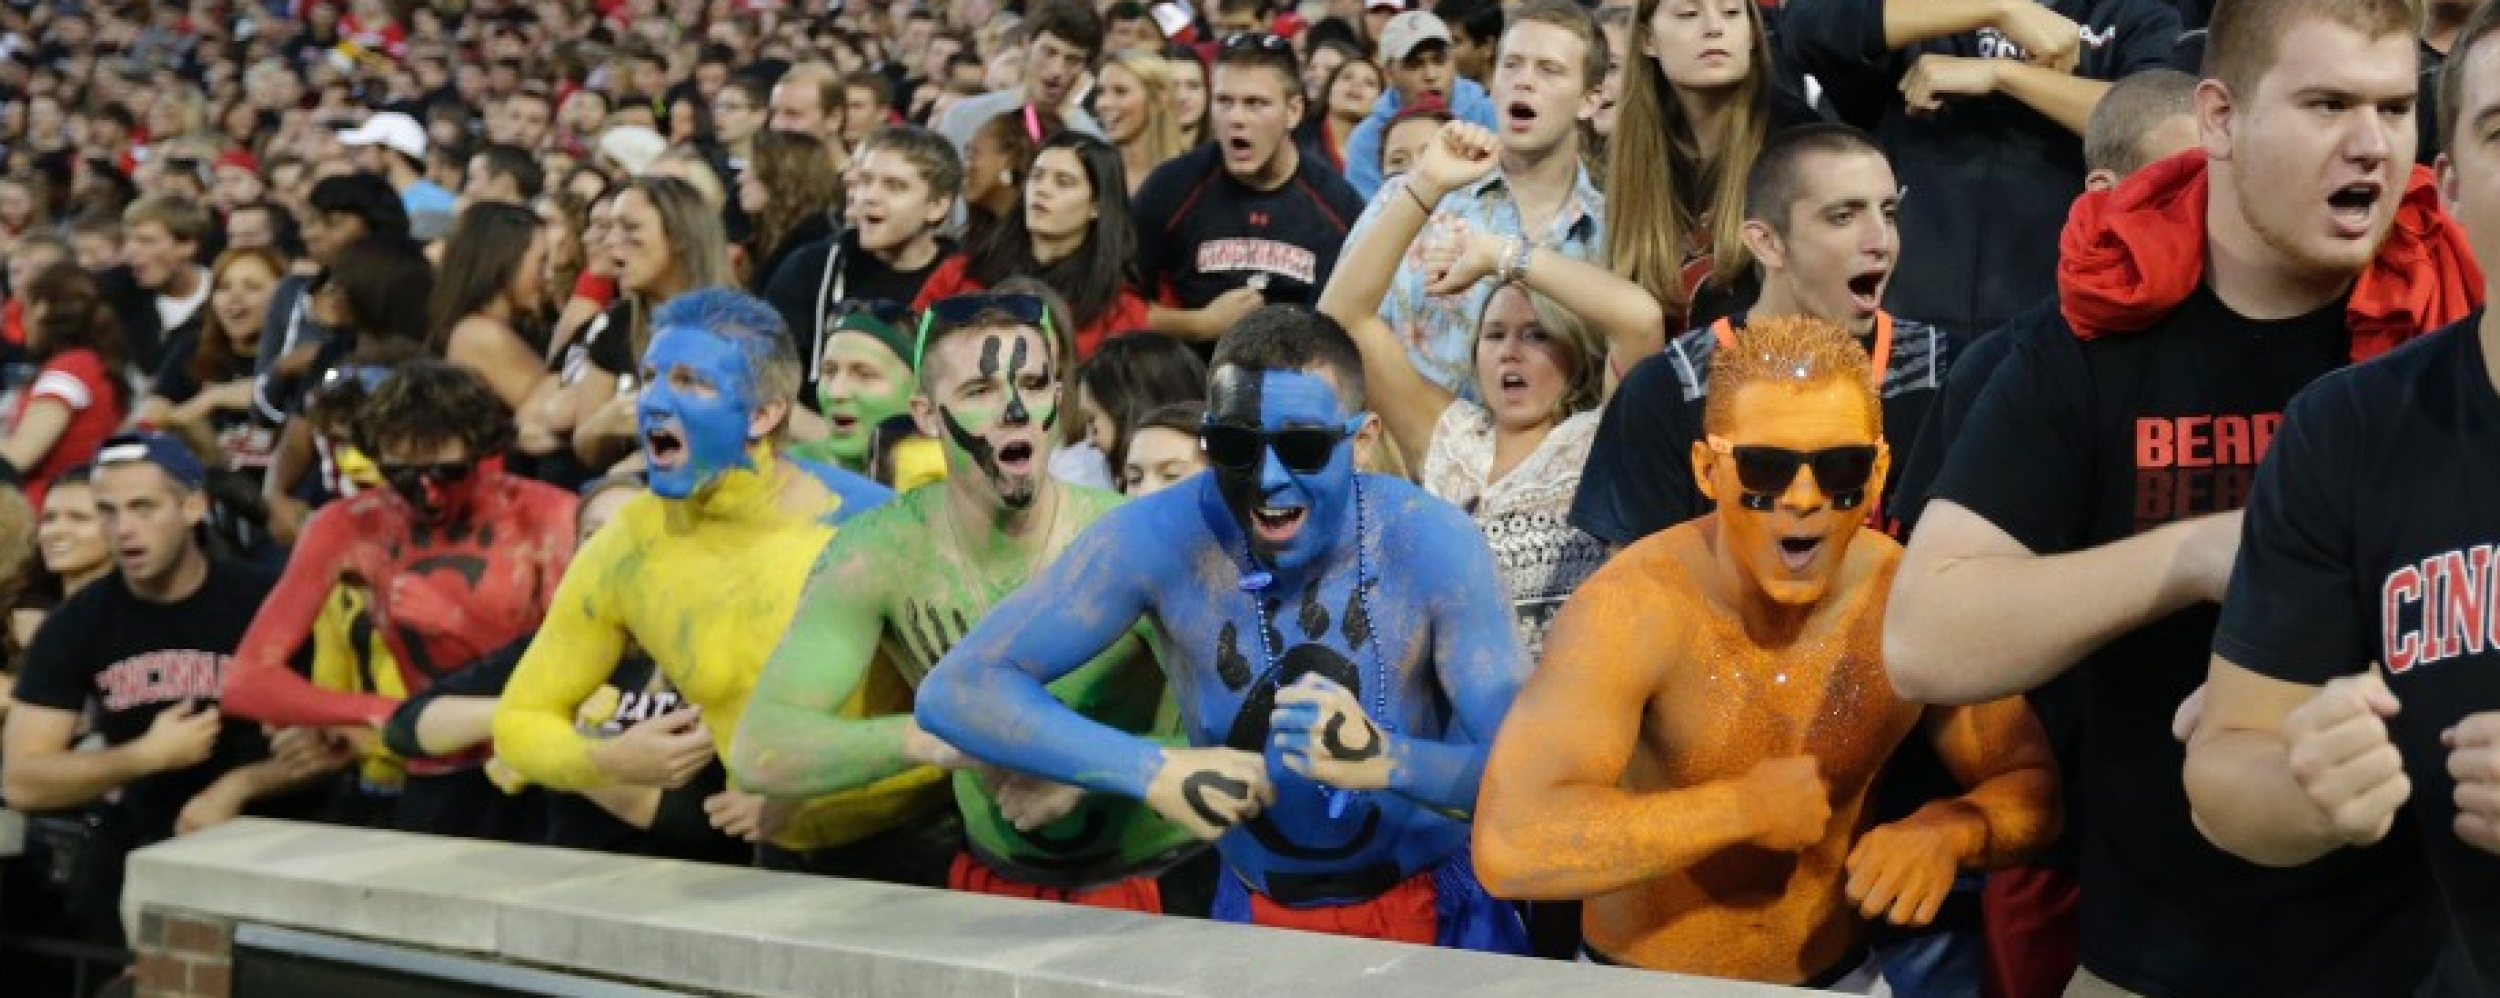 University of Cincinnati students, with faces painted bright colors, roll their hands as part of a cheer.